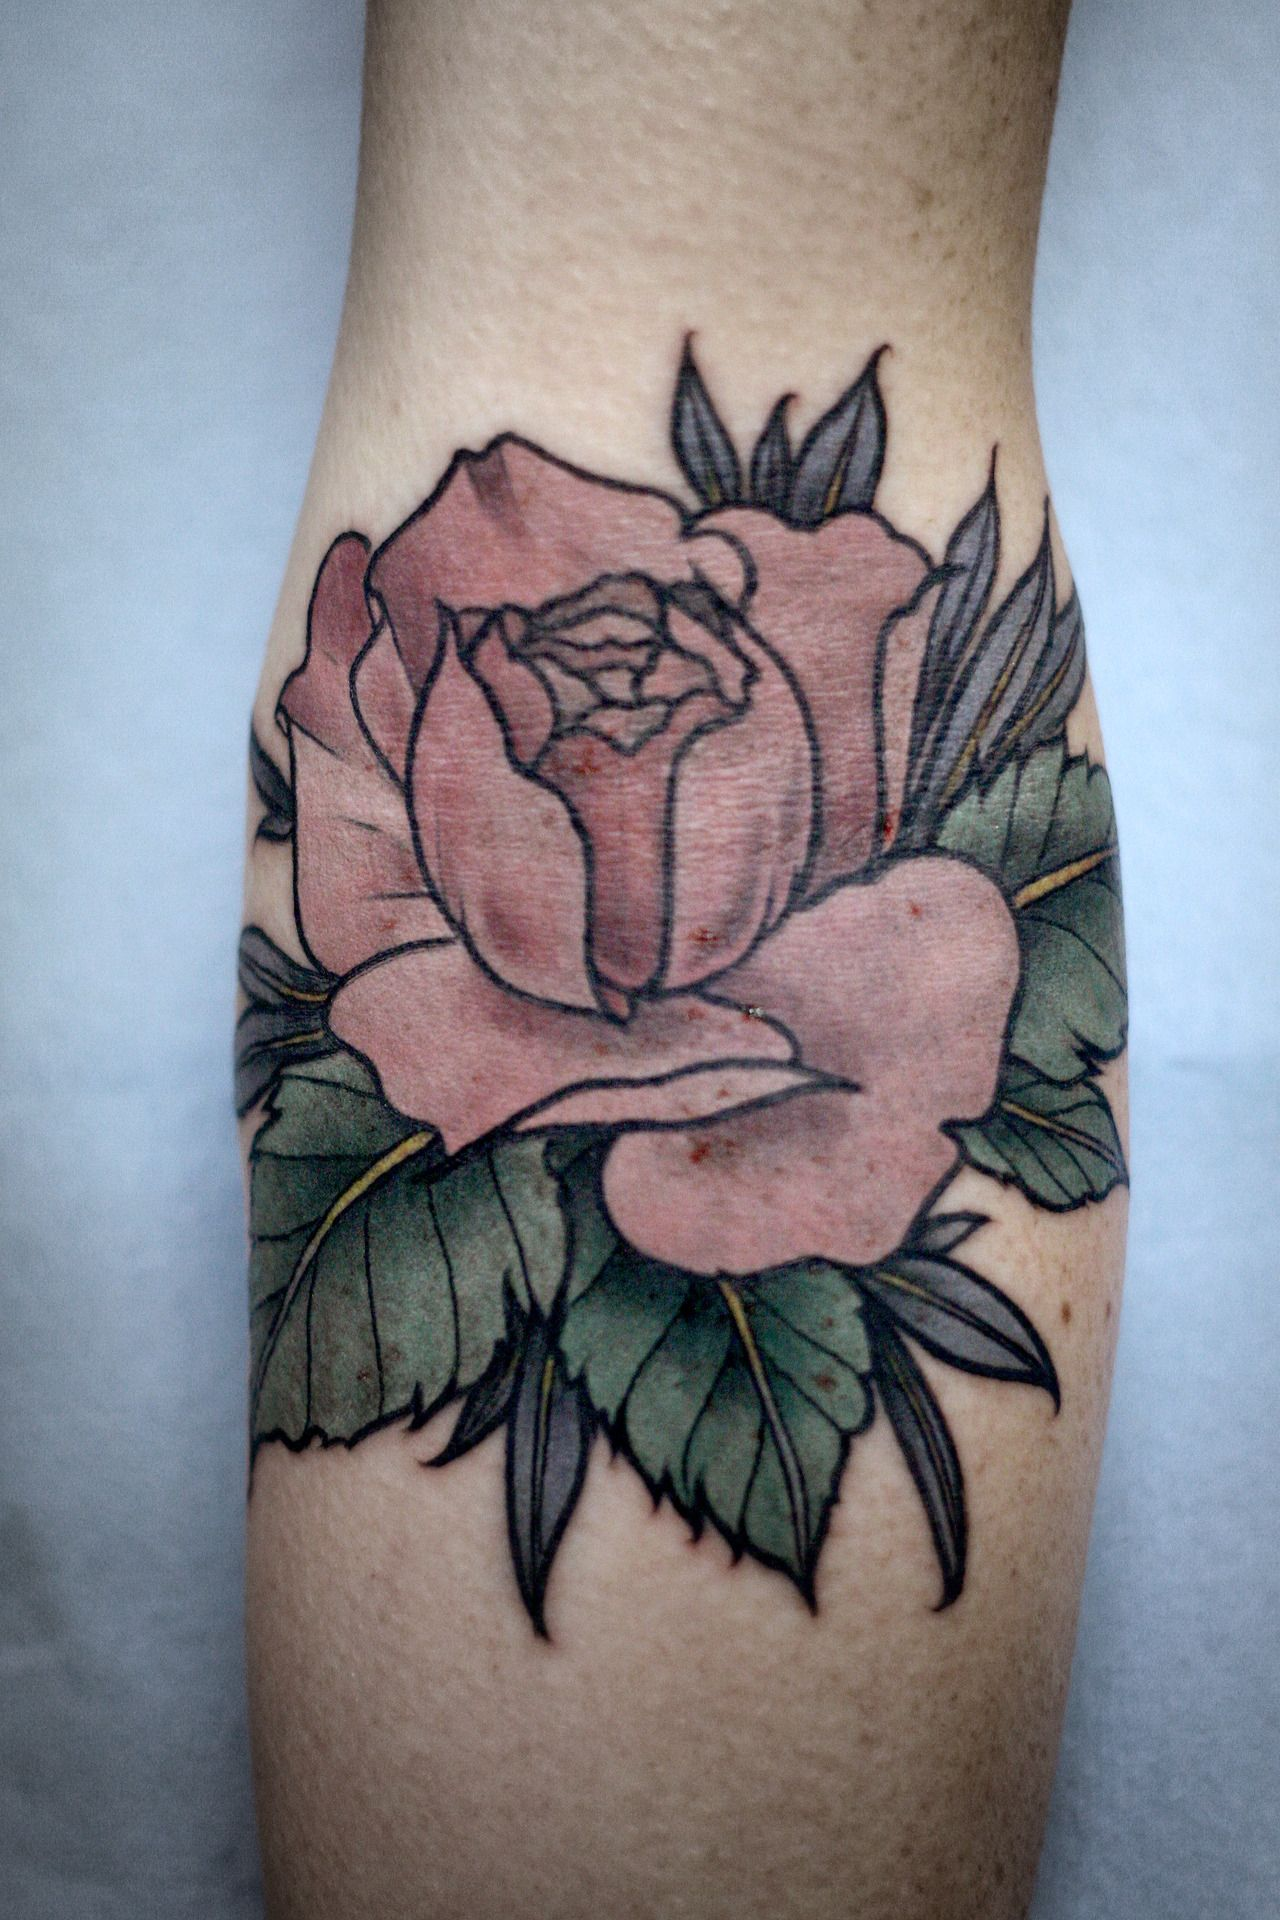 Pretty flower tattoos by http://alicecarrier.tumblr.com/